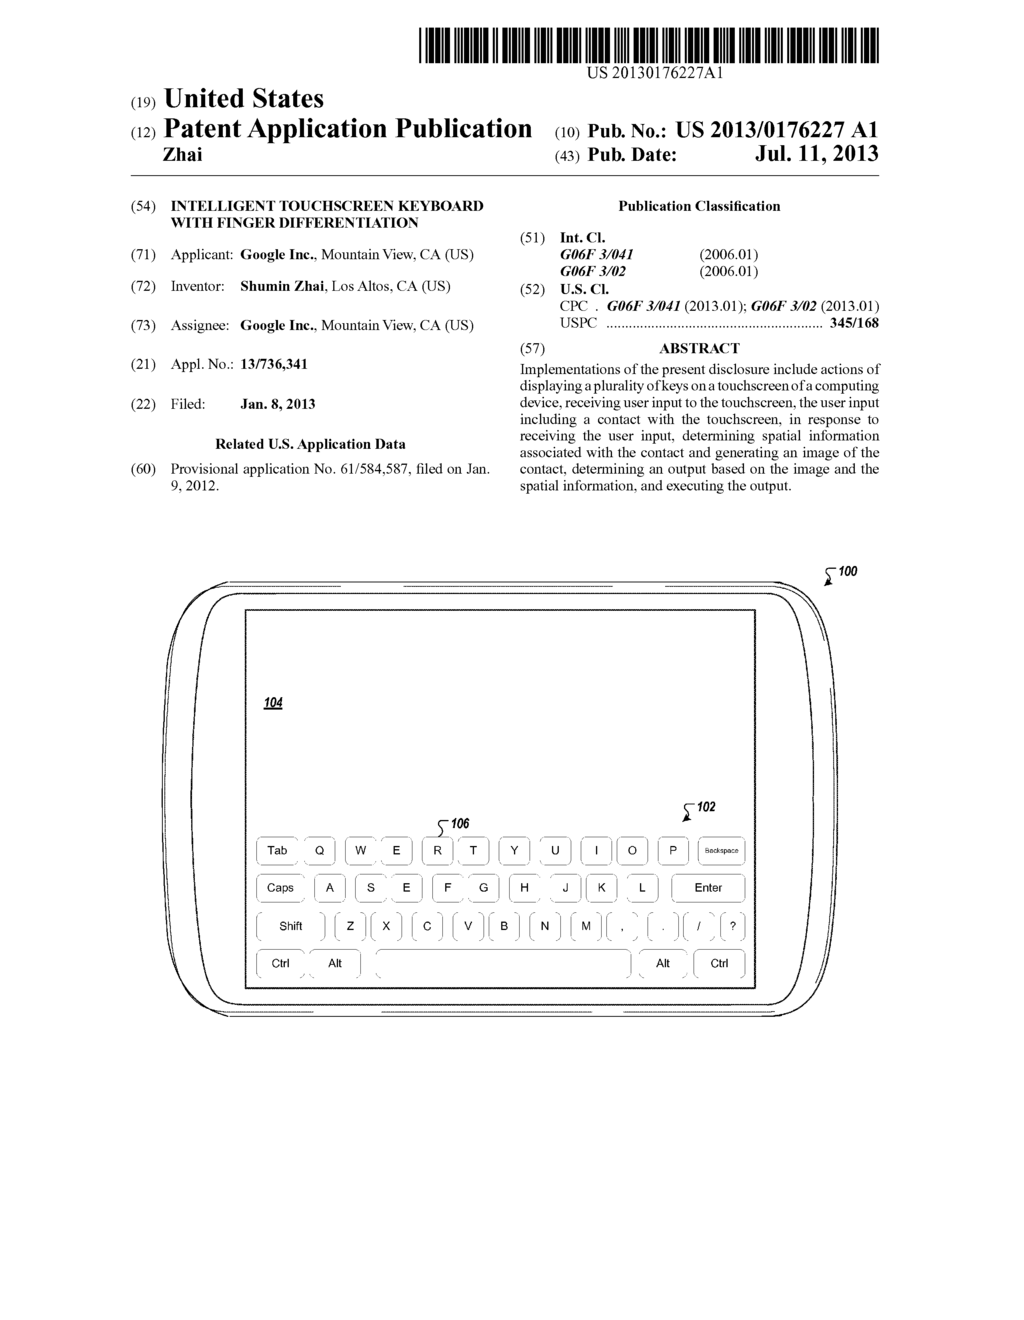 Intelligent Touchscreen Keyboard With Finger Differentiation - diagram, schematic, and image 01